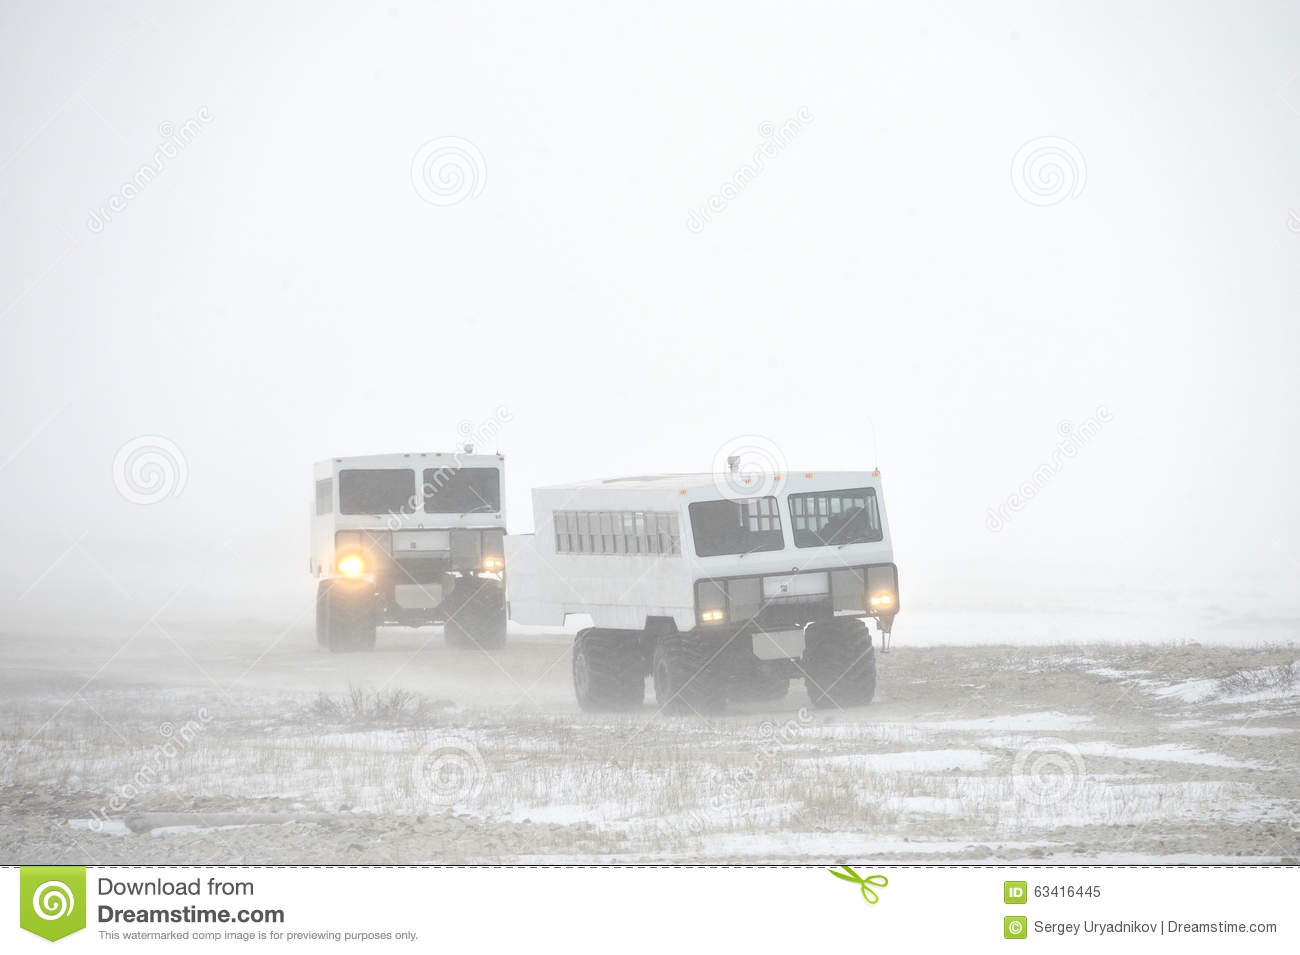 The all-terrain vehicle for snow trips to a snow blizzard in the tundra. Special car for the Arctic safari.